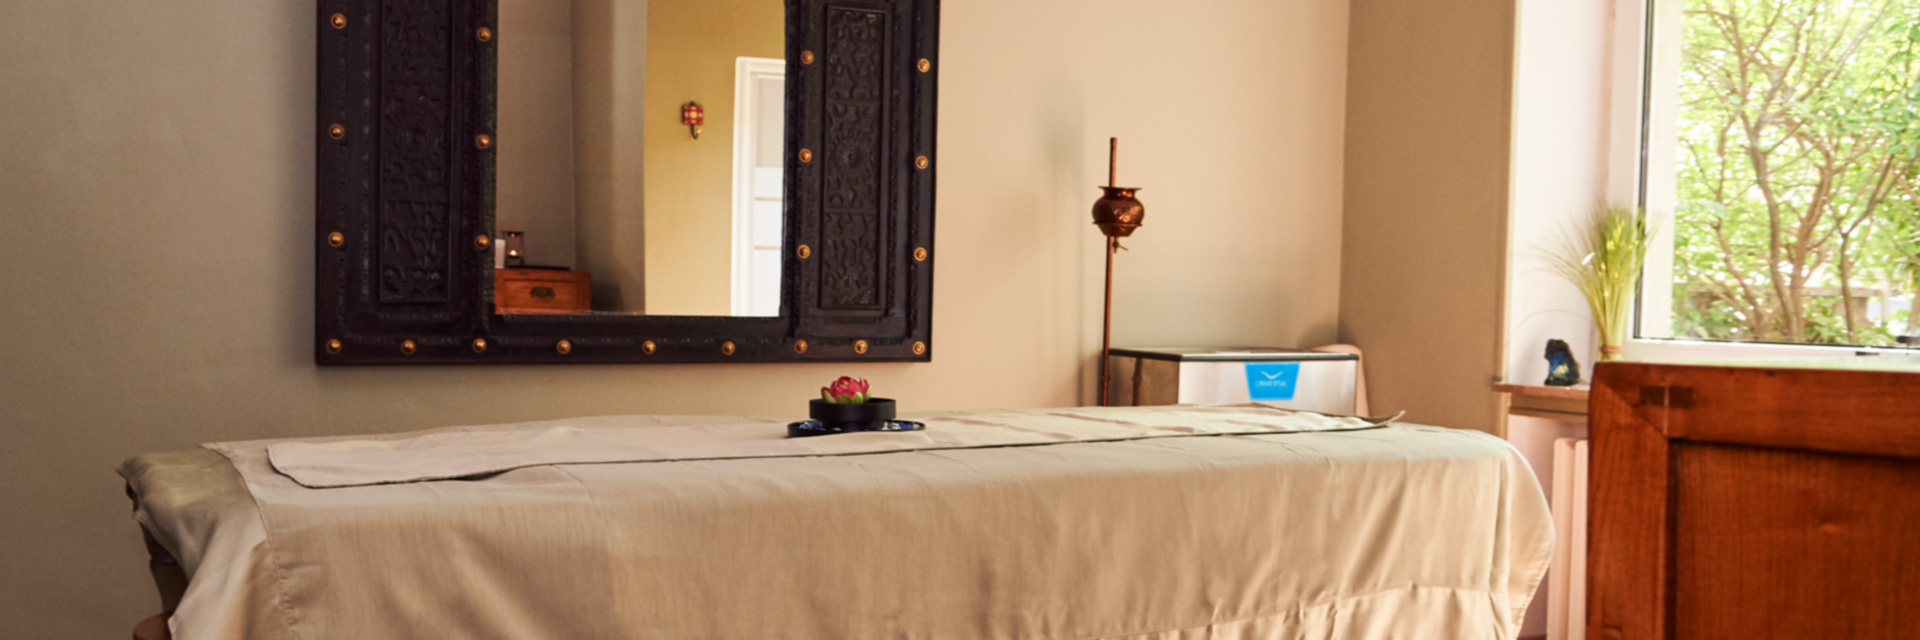 Massages in the heart of Belair